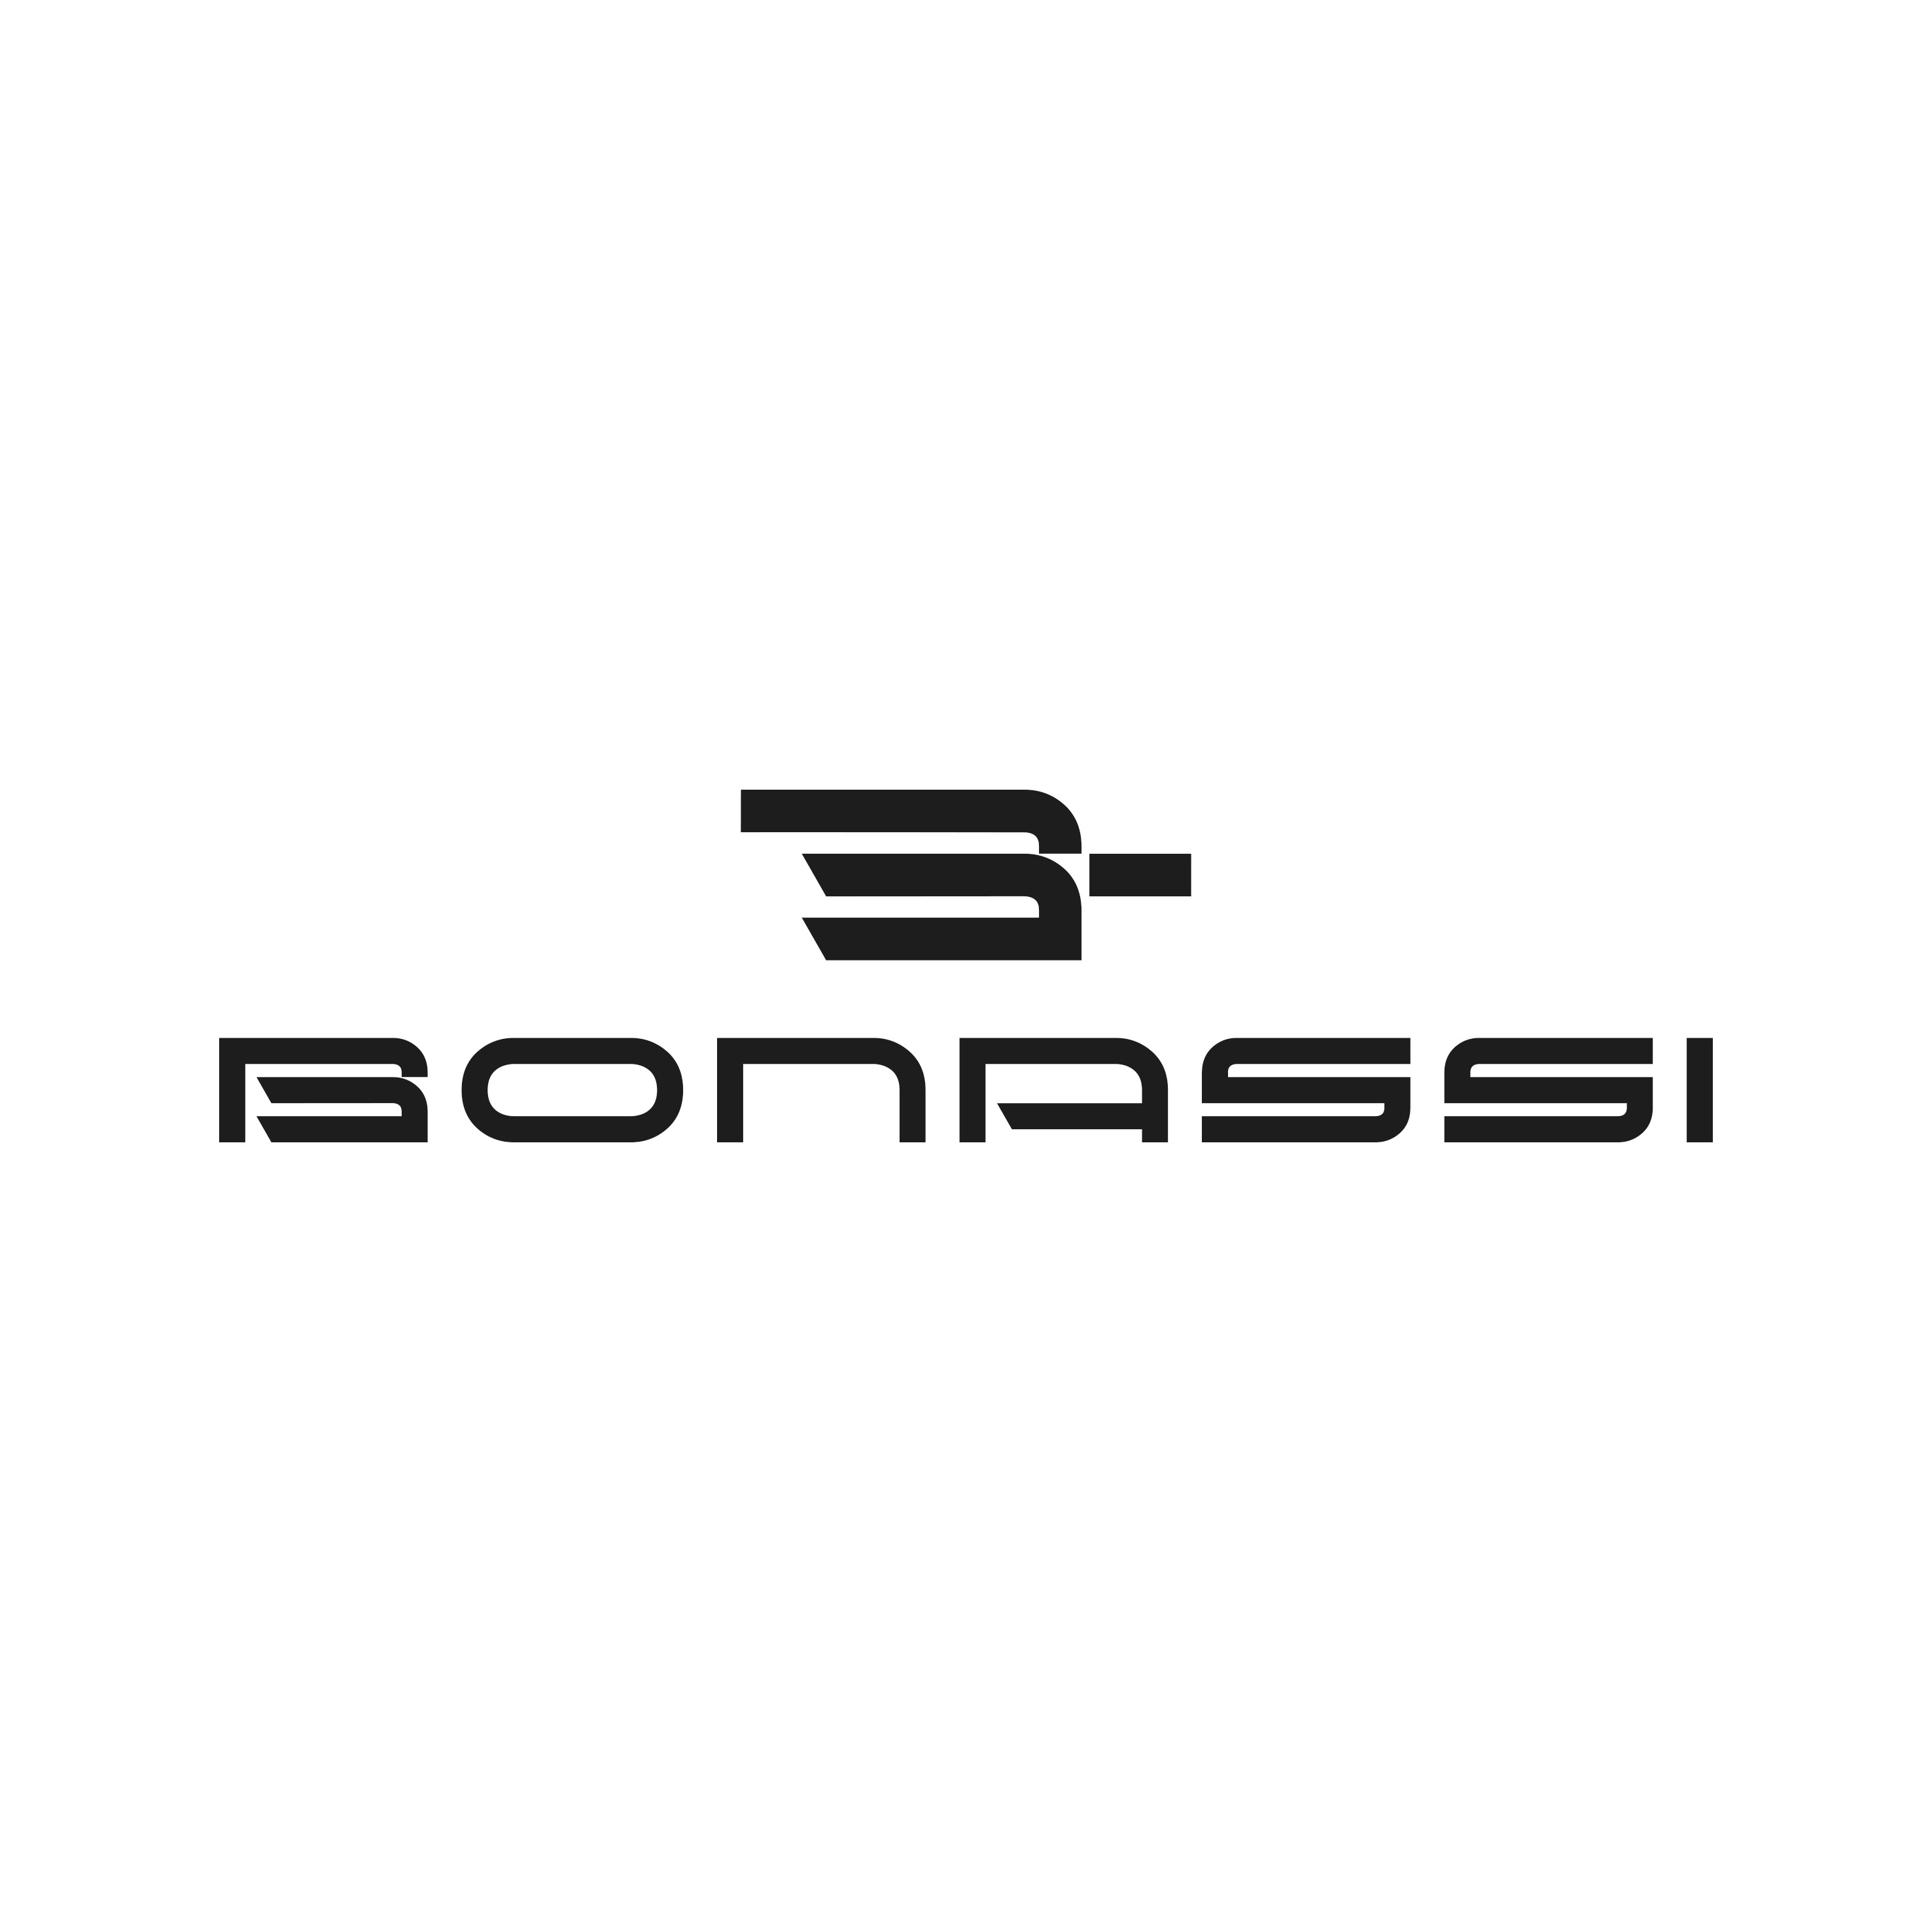 One-on-one with a Bonassi expert